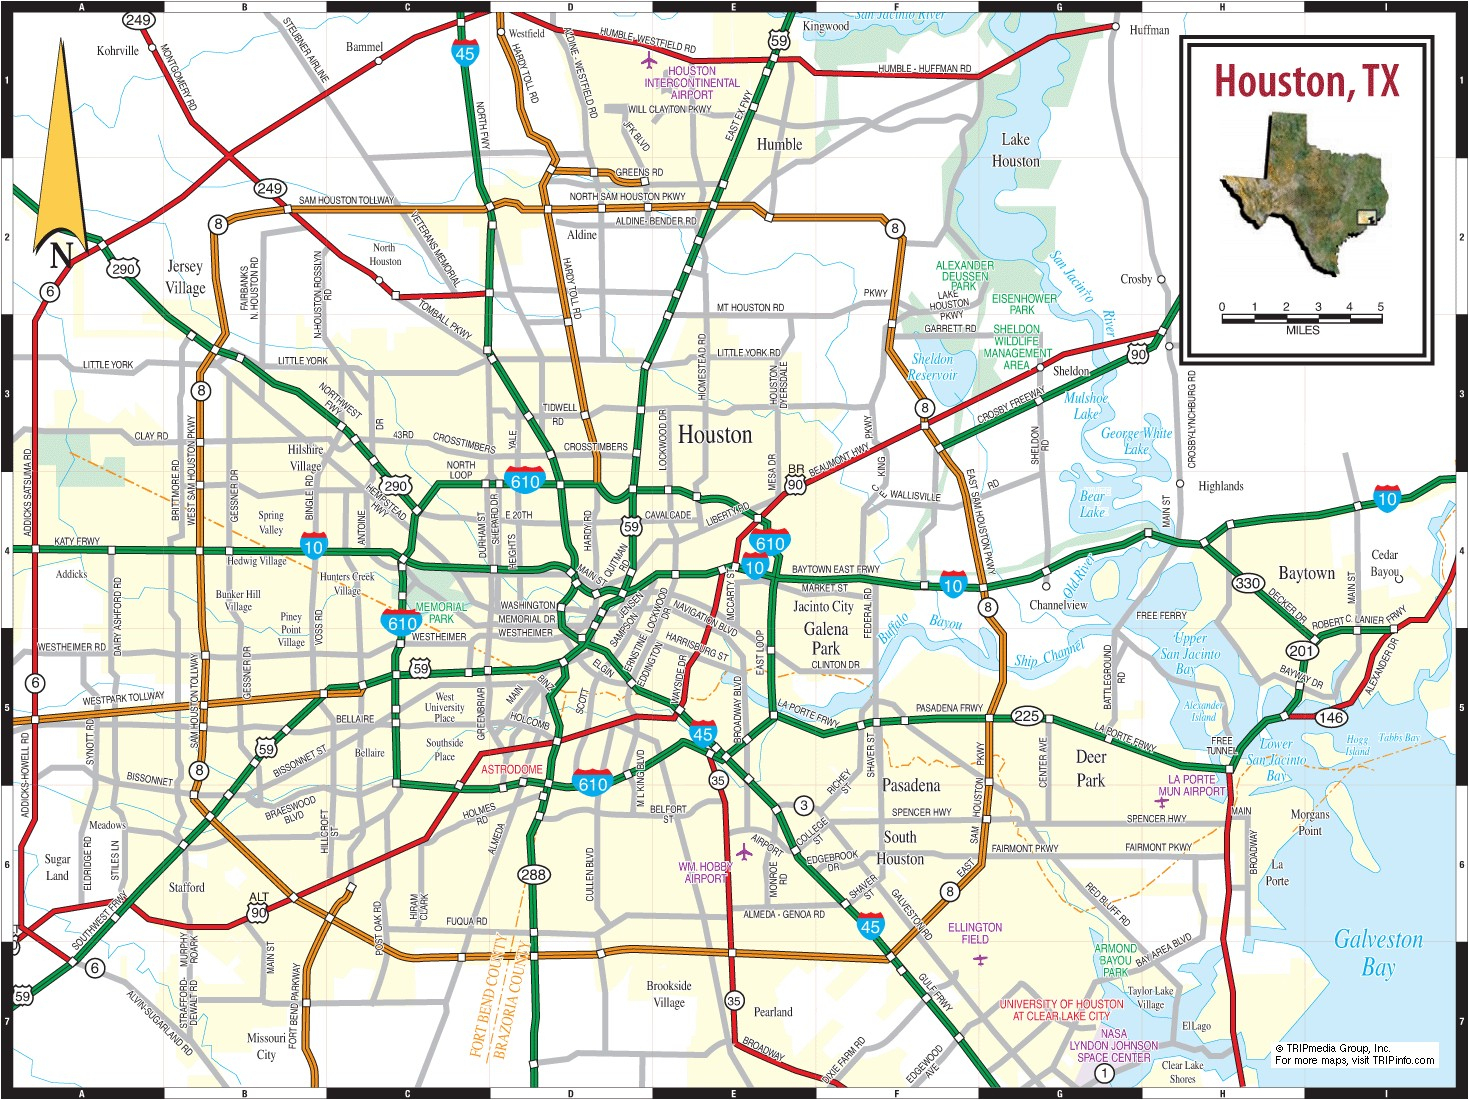 Printable Texas Road Map - Free World Maps Collection - Texas Road Map Free